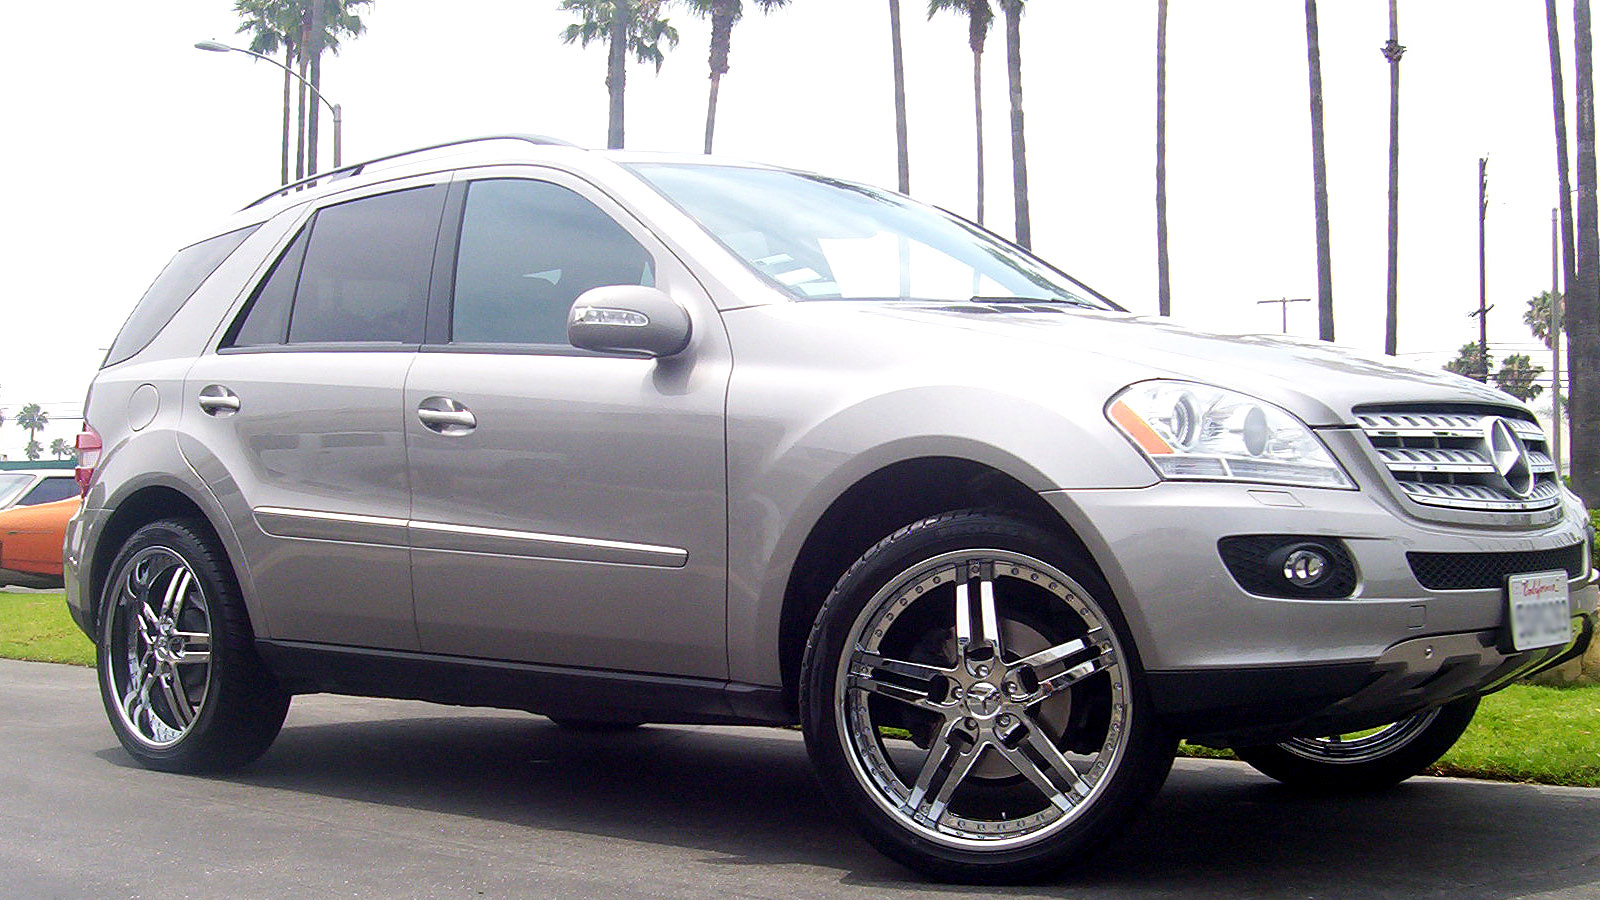 Mercedes benz ml350 monza gallery mht wheels inc for Mercedes benz wheel